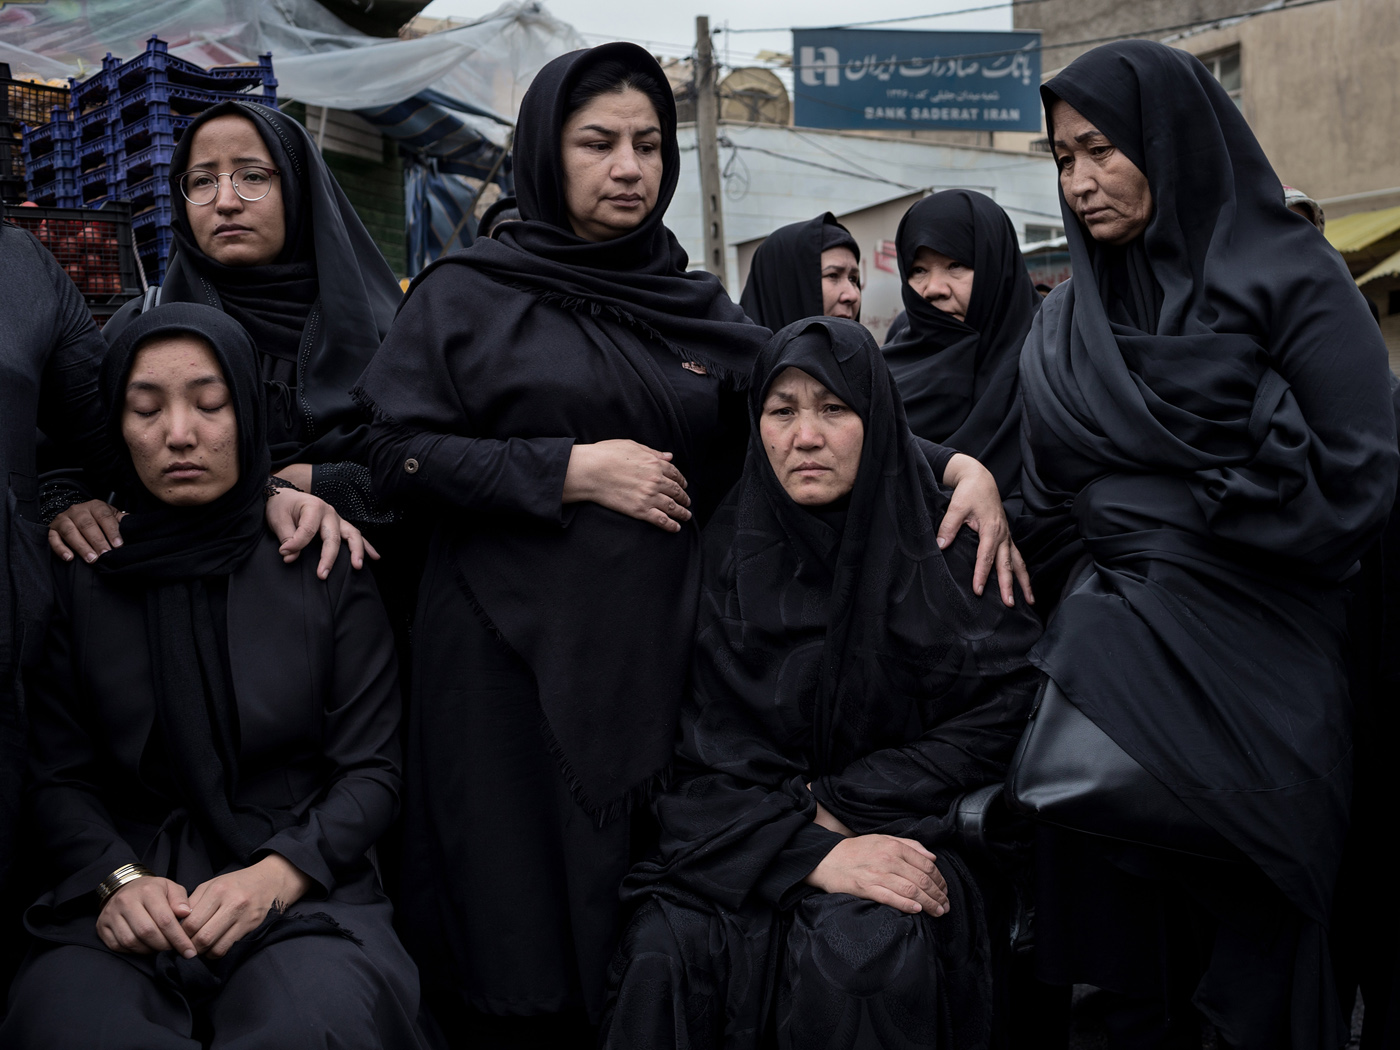 Female relatives of Alireza Akbari of the Fatemioun brigade mourn prior to the release of his corpse in the Fallah neighbourhood of Tehran on Thursday April 18th, 2019.